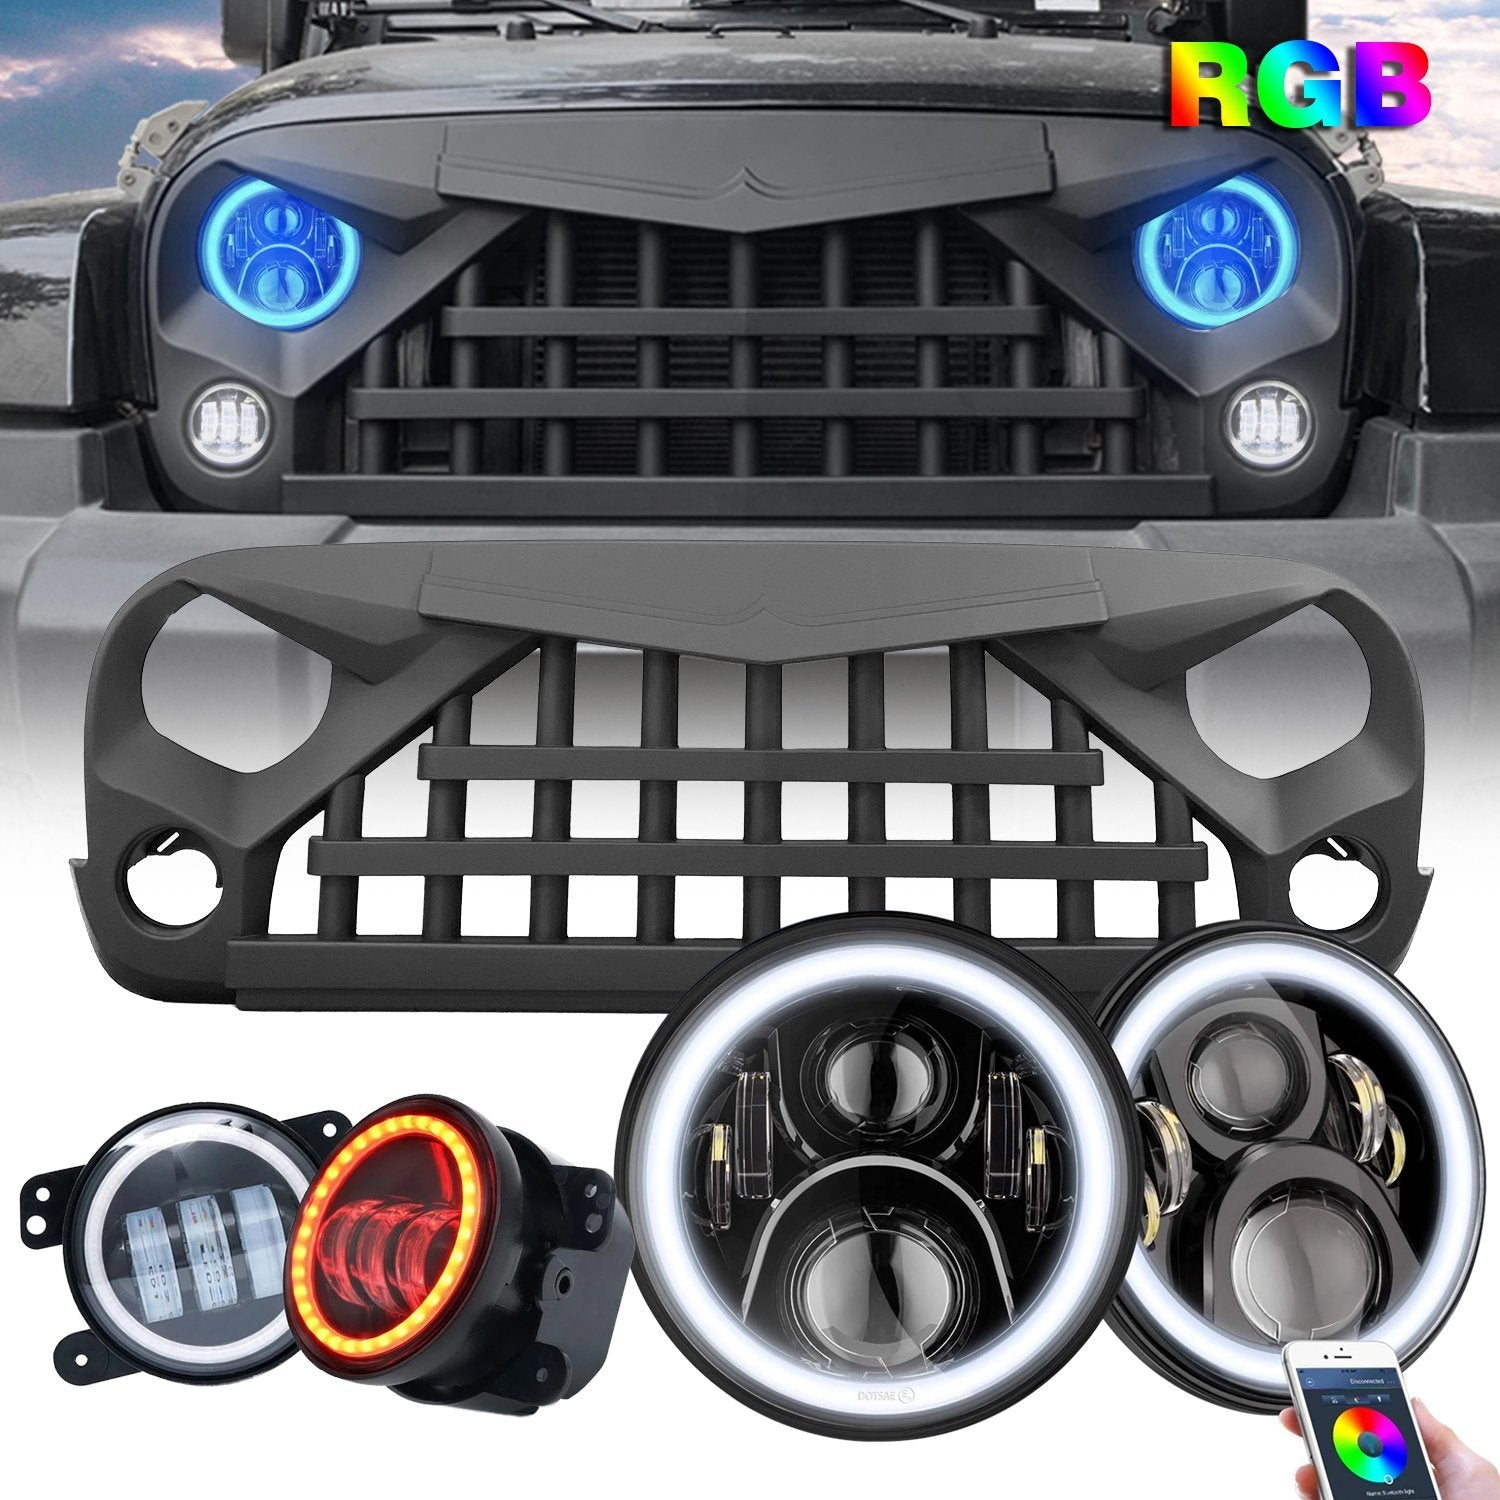 JK Warrior Grille & RGB Halo Headlights & RGB Halo Fog Lights